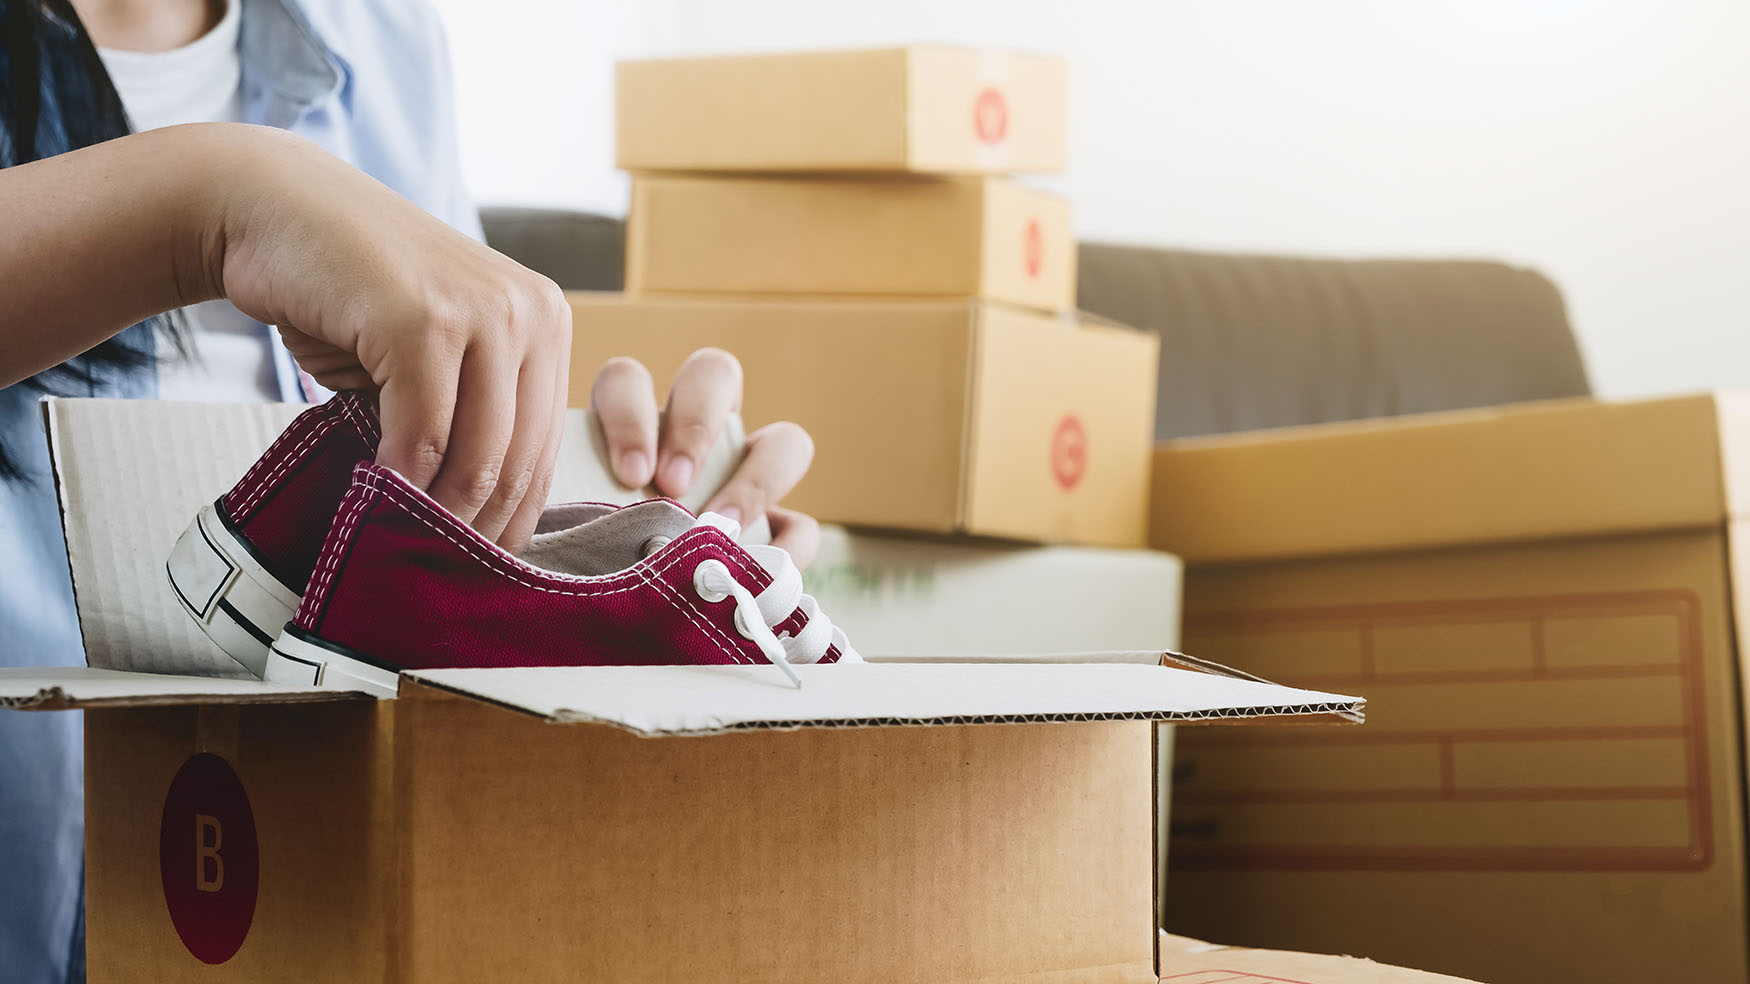 Young woman putting red sneakers in moving box